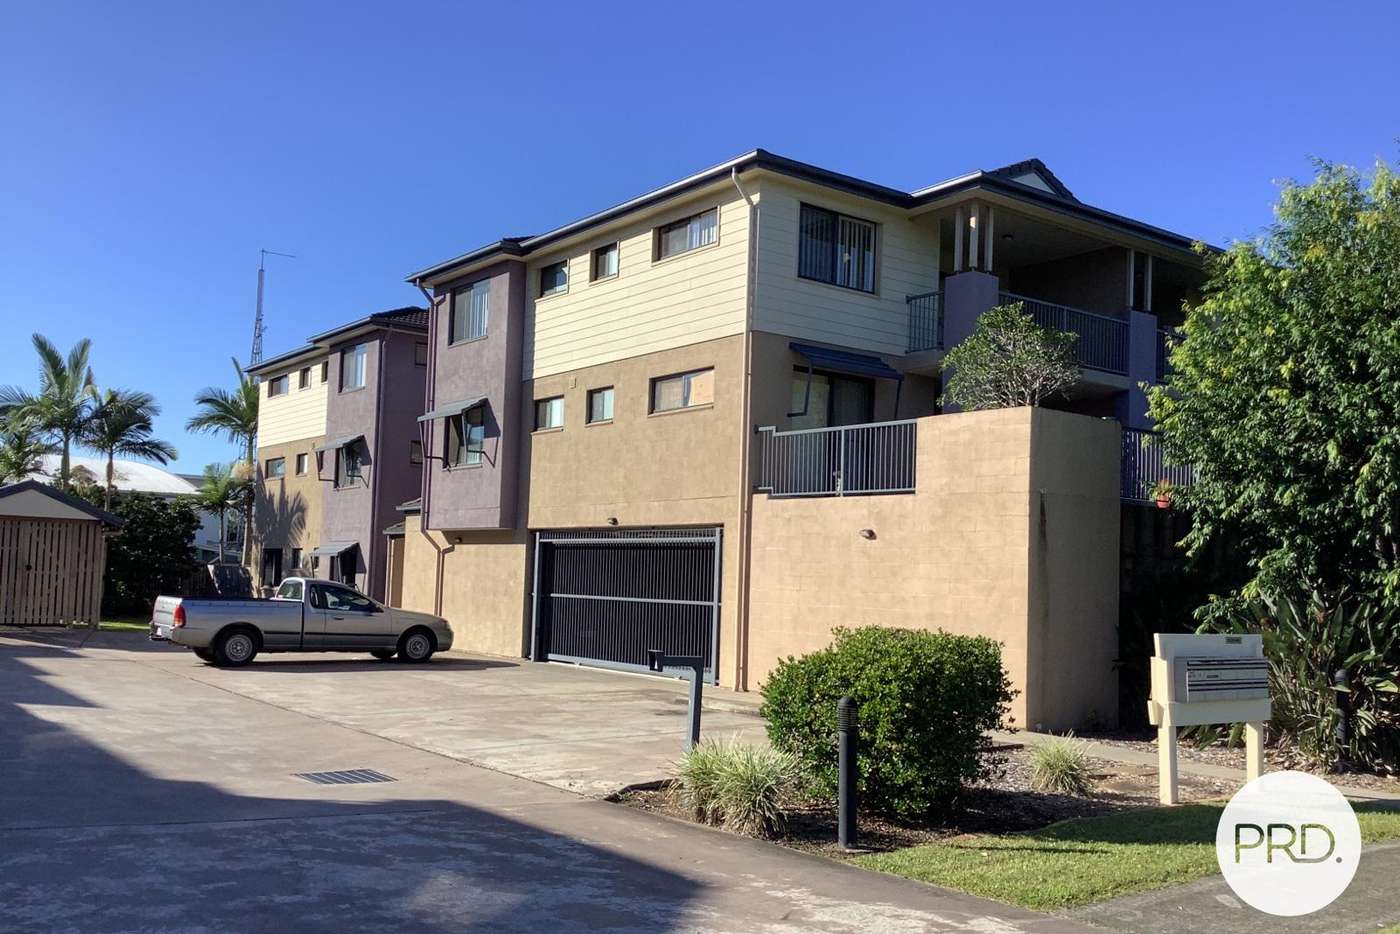 16/1 SHORT STREET, Caboolture QLD 4510 - Unit For Rent ...